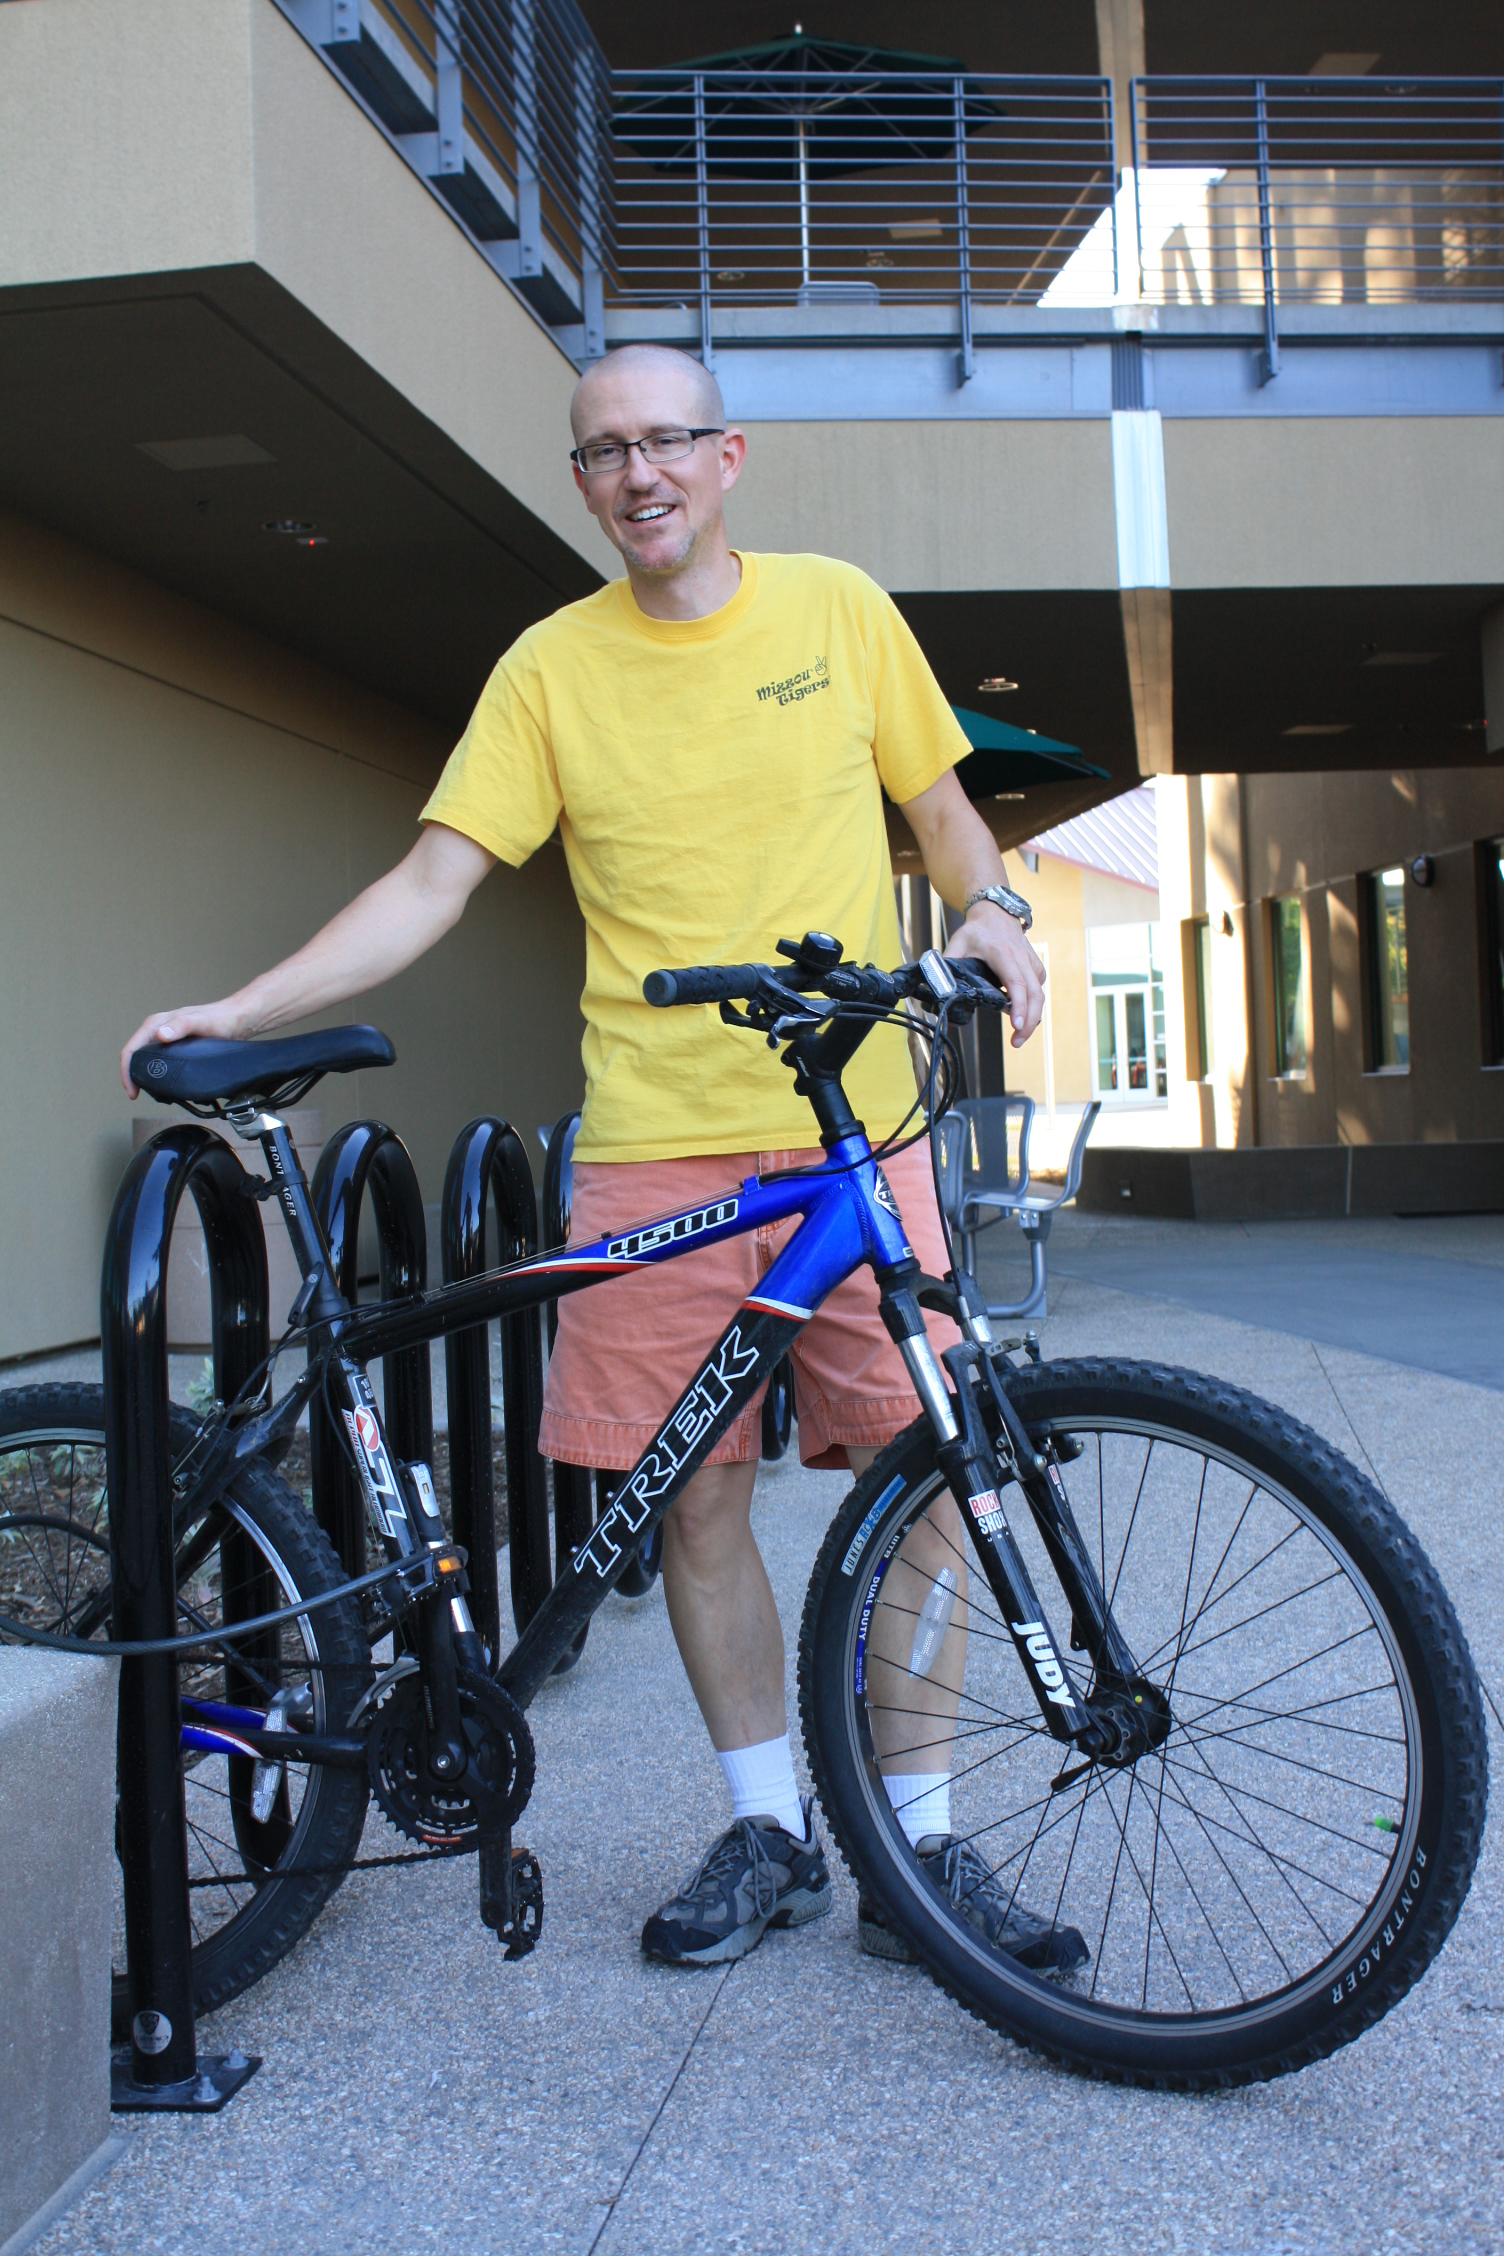 Professor Todd Heible poses with his bicycle in front of the bike rack outside the PS building